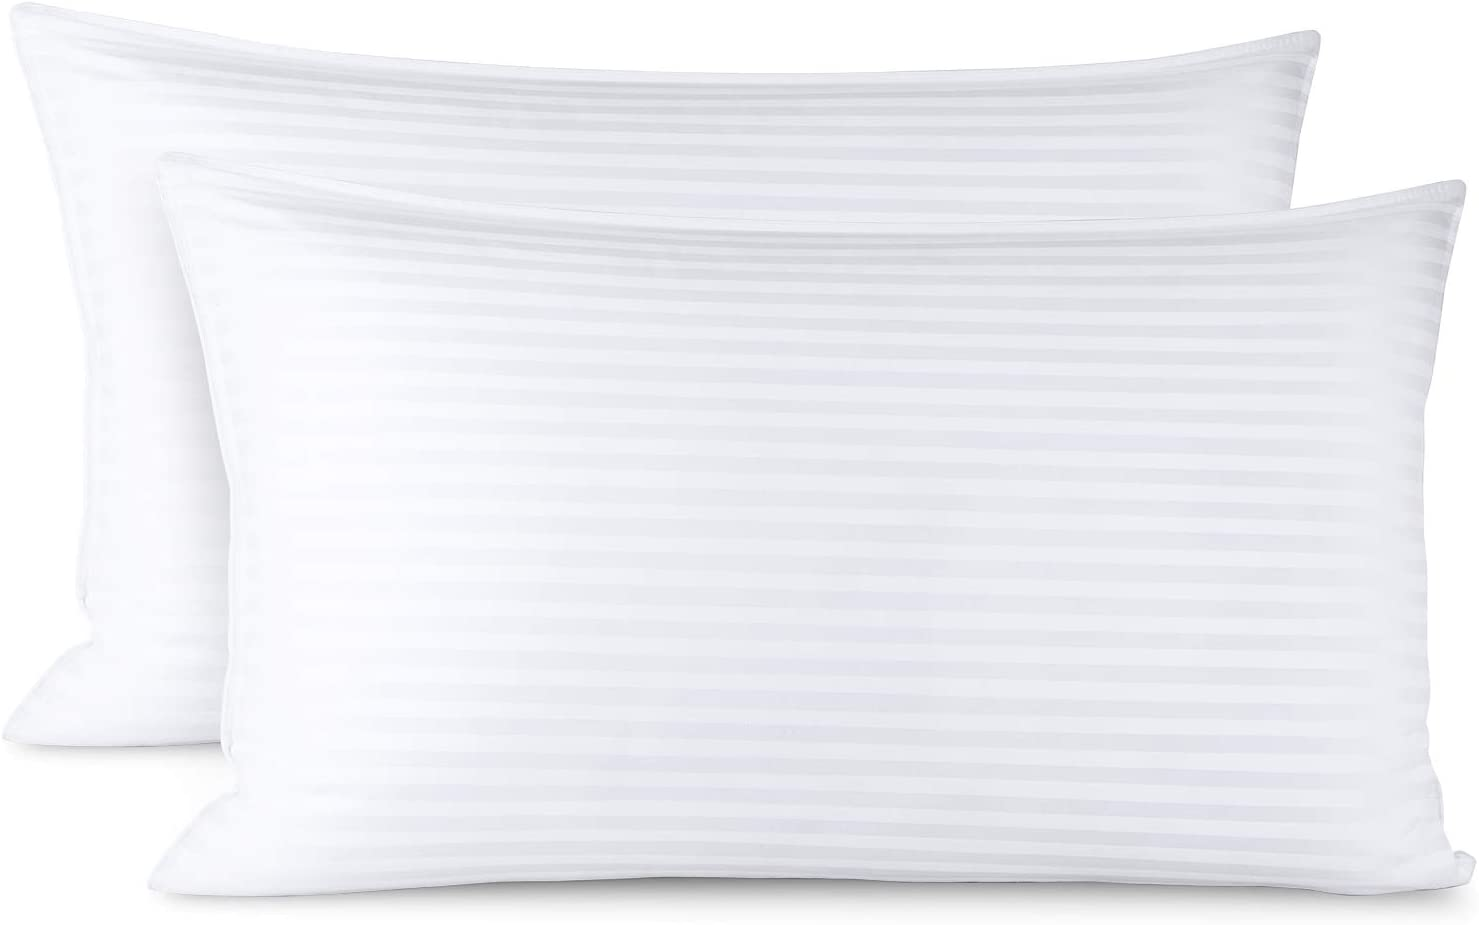 Nestl Bedding Bed Pillows for Sleeping | Down Alternative Sleep Pillows King Size Set of 2 | 100% Cotton Pillow Covers with Poly Fiber Filling | Soft Pillow for Sleeping